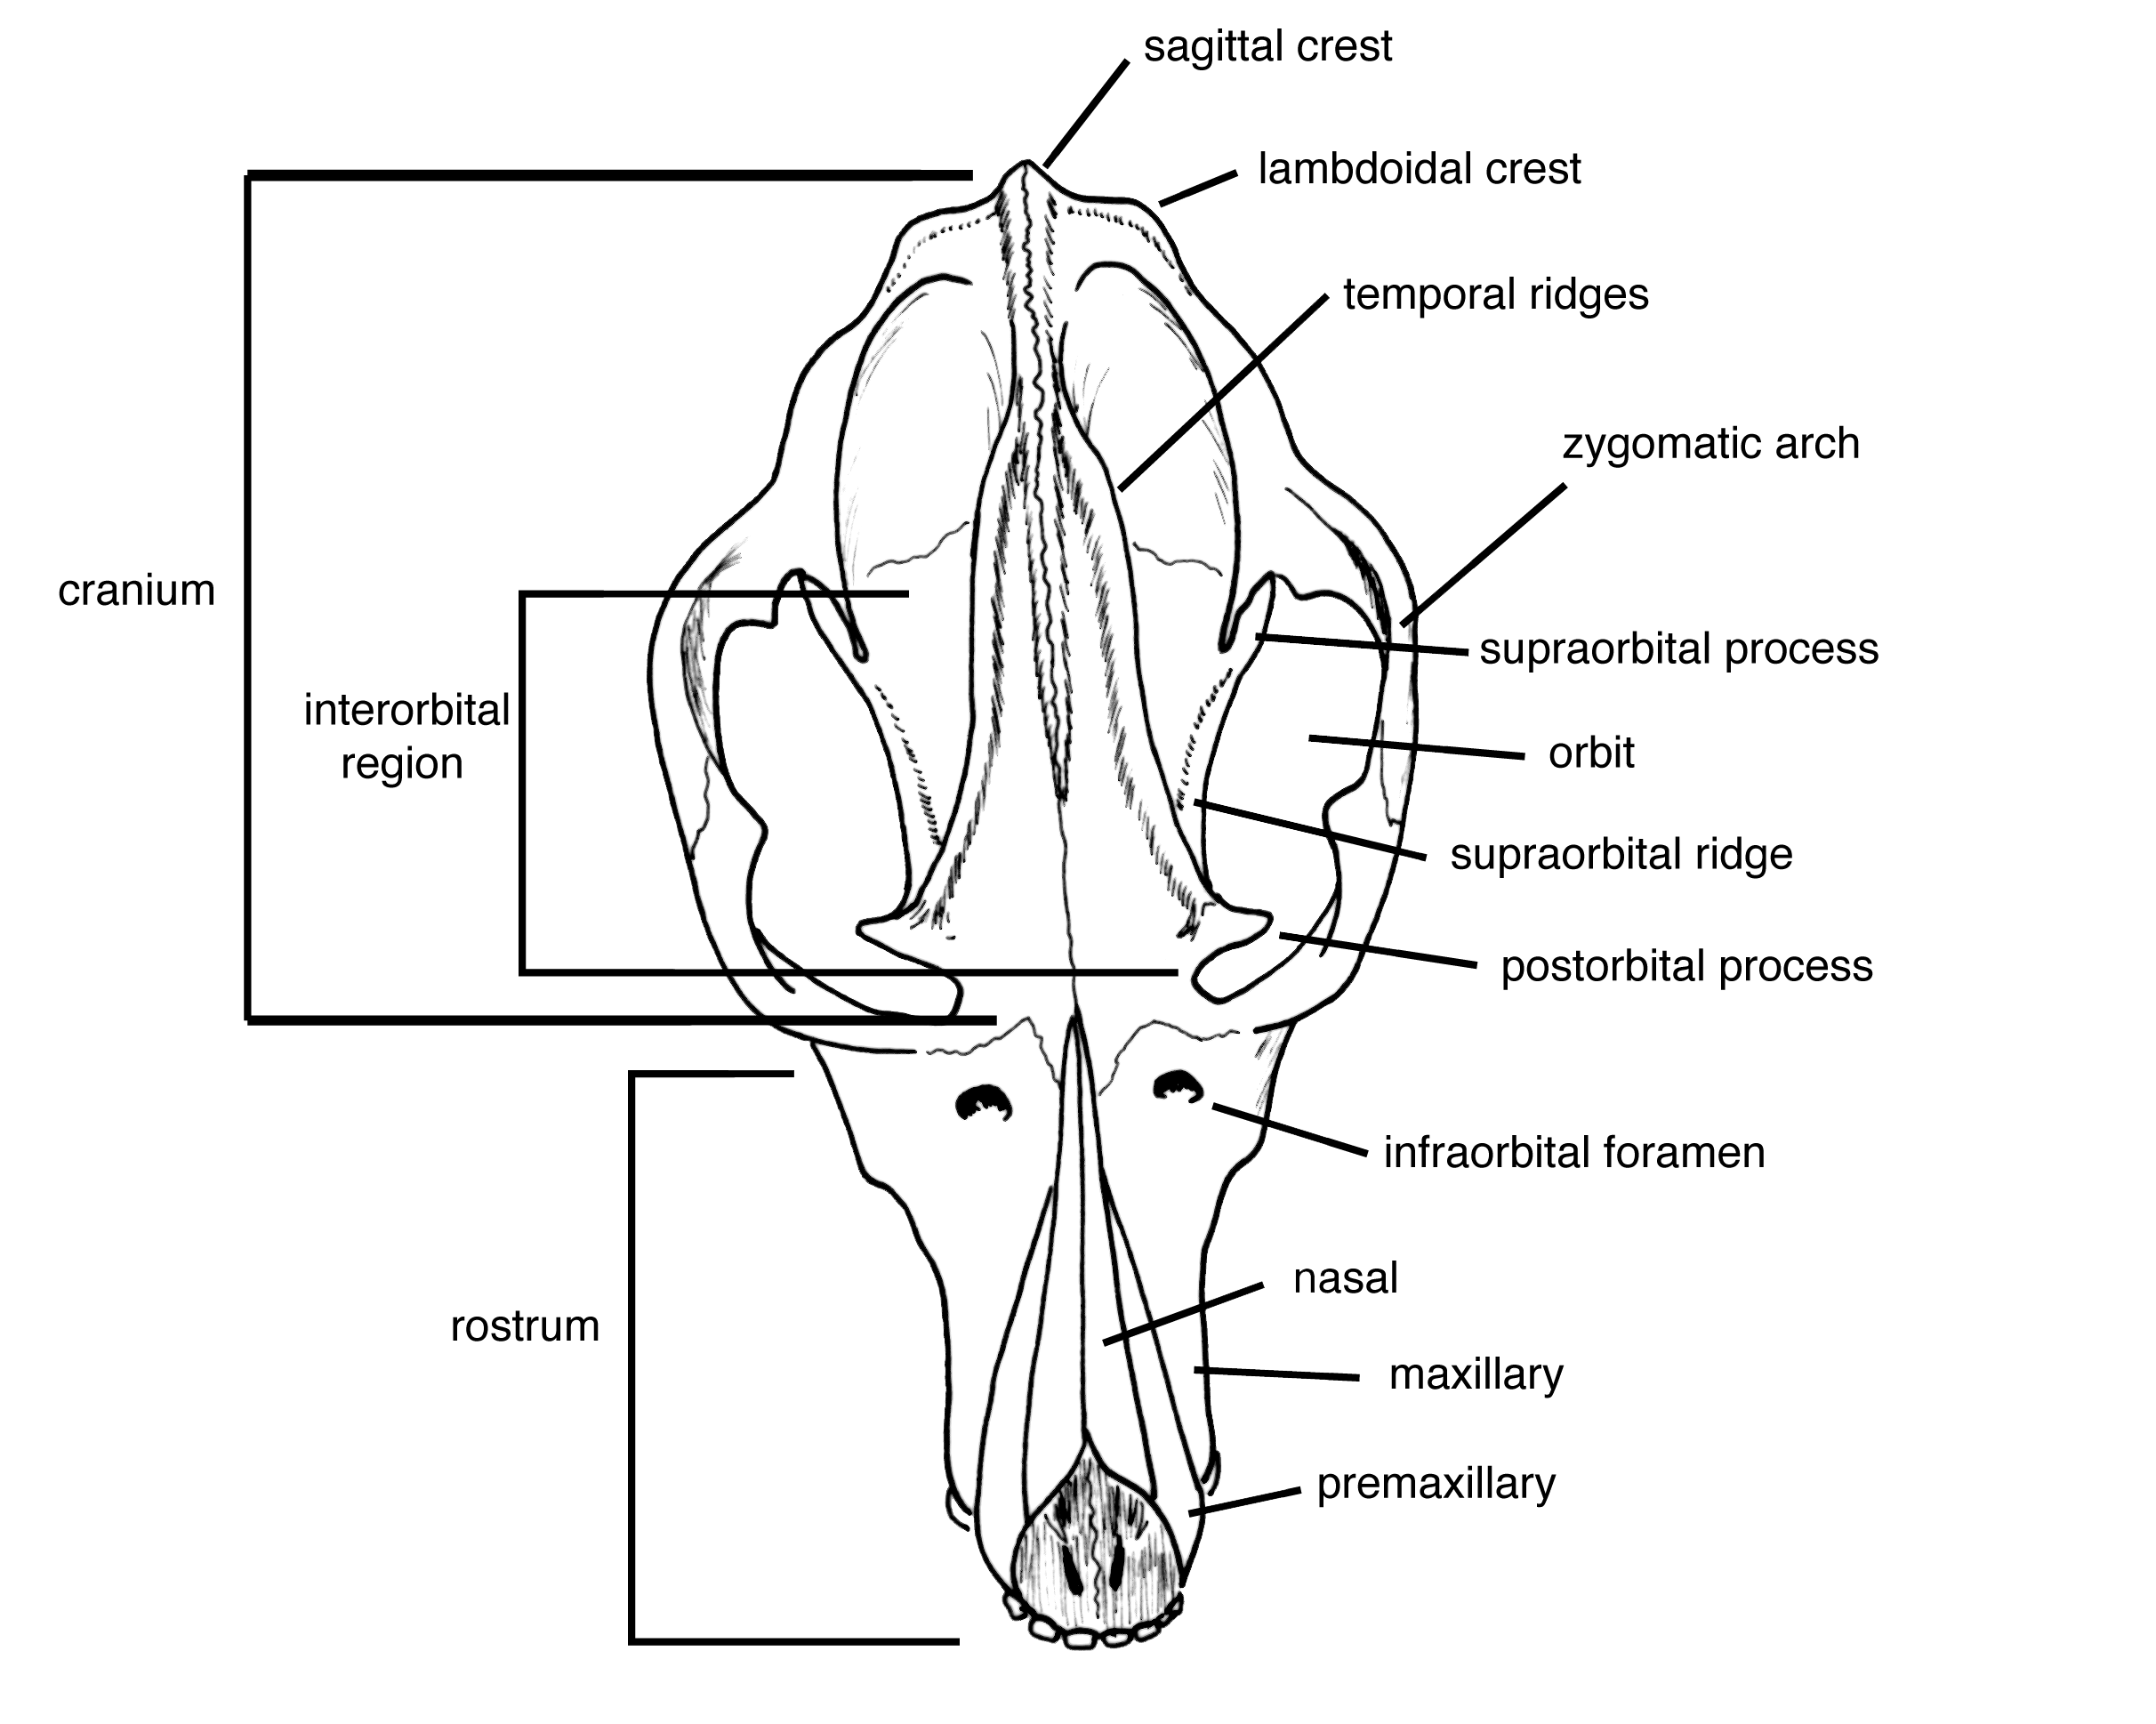 rodent skull, front view